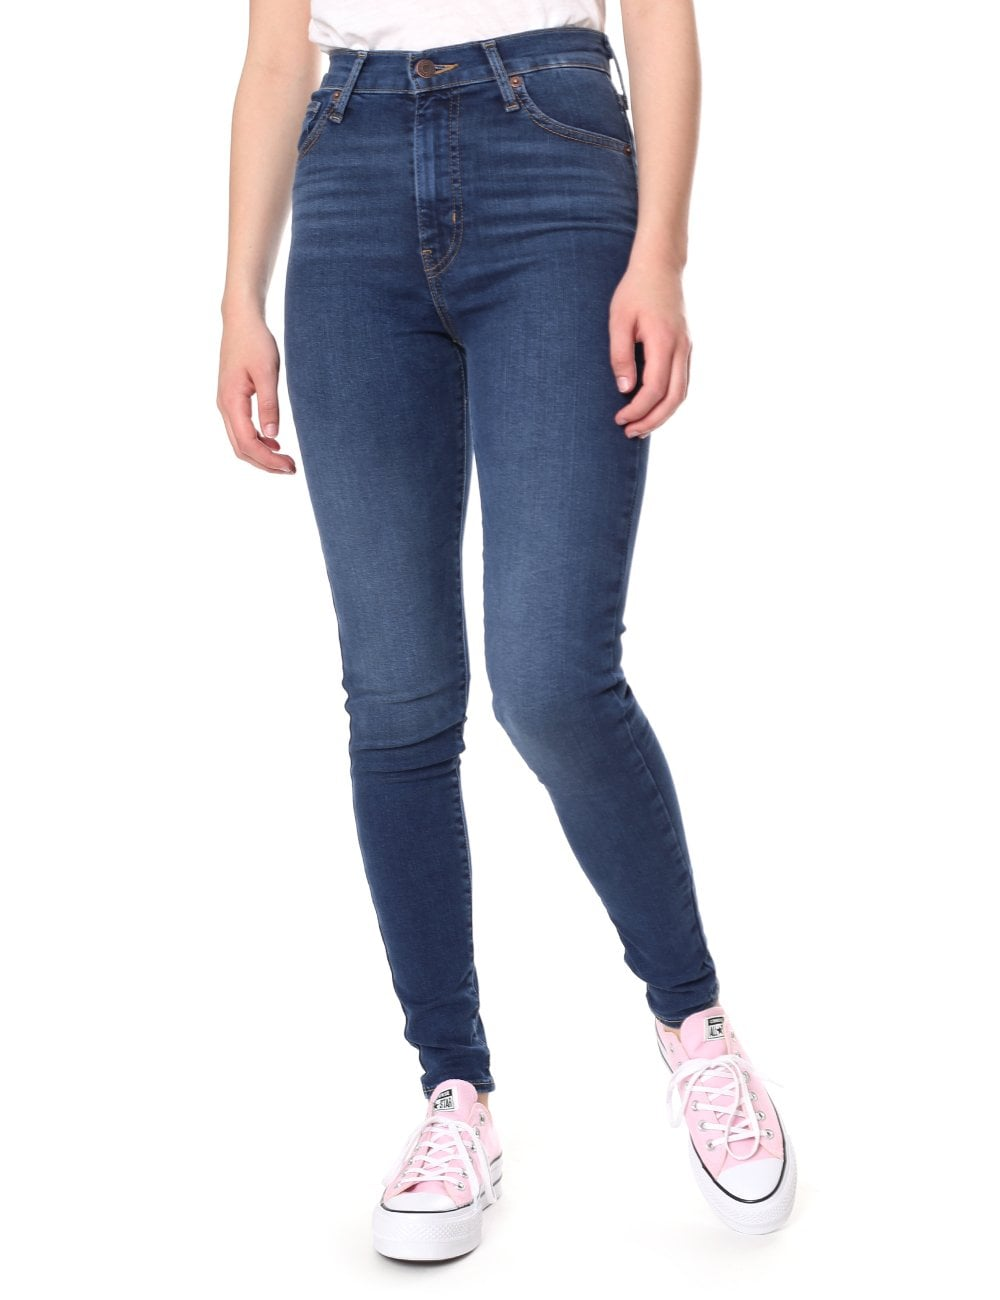 a306530f730 Levi s Women s Mile High Super Skinny Jeans